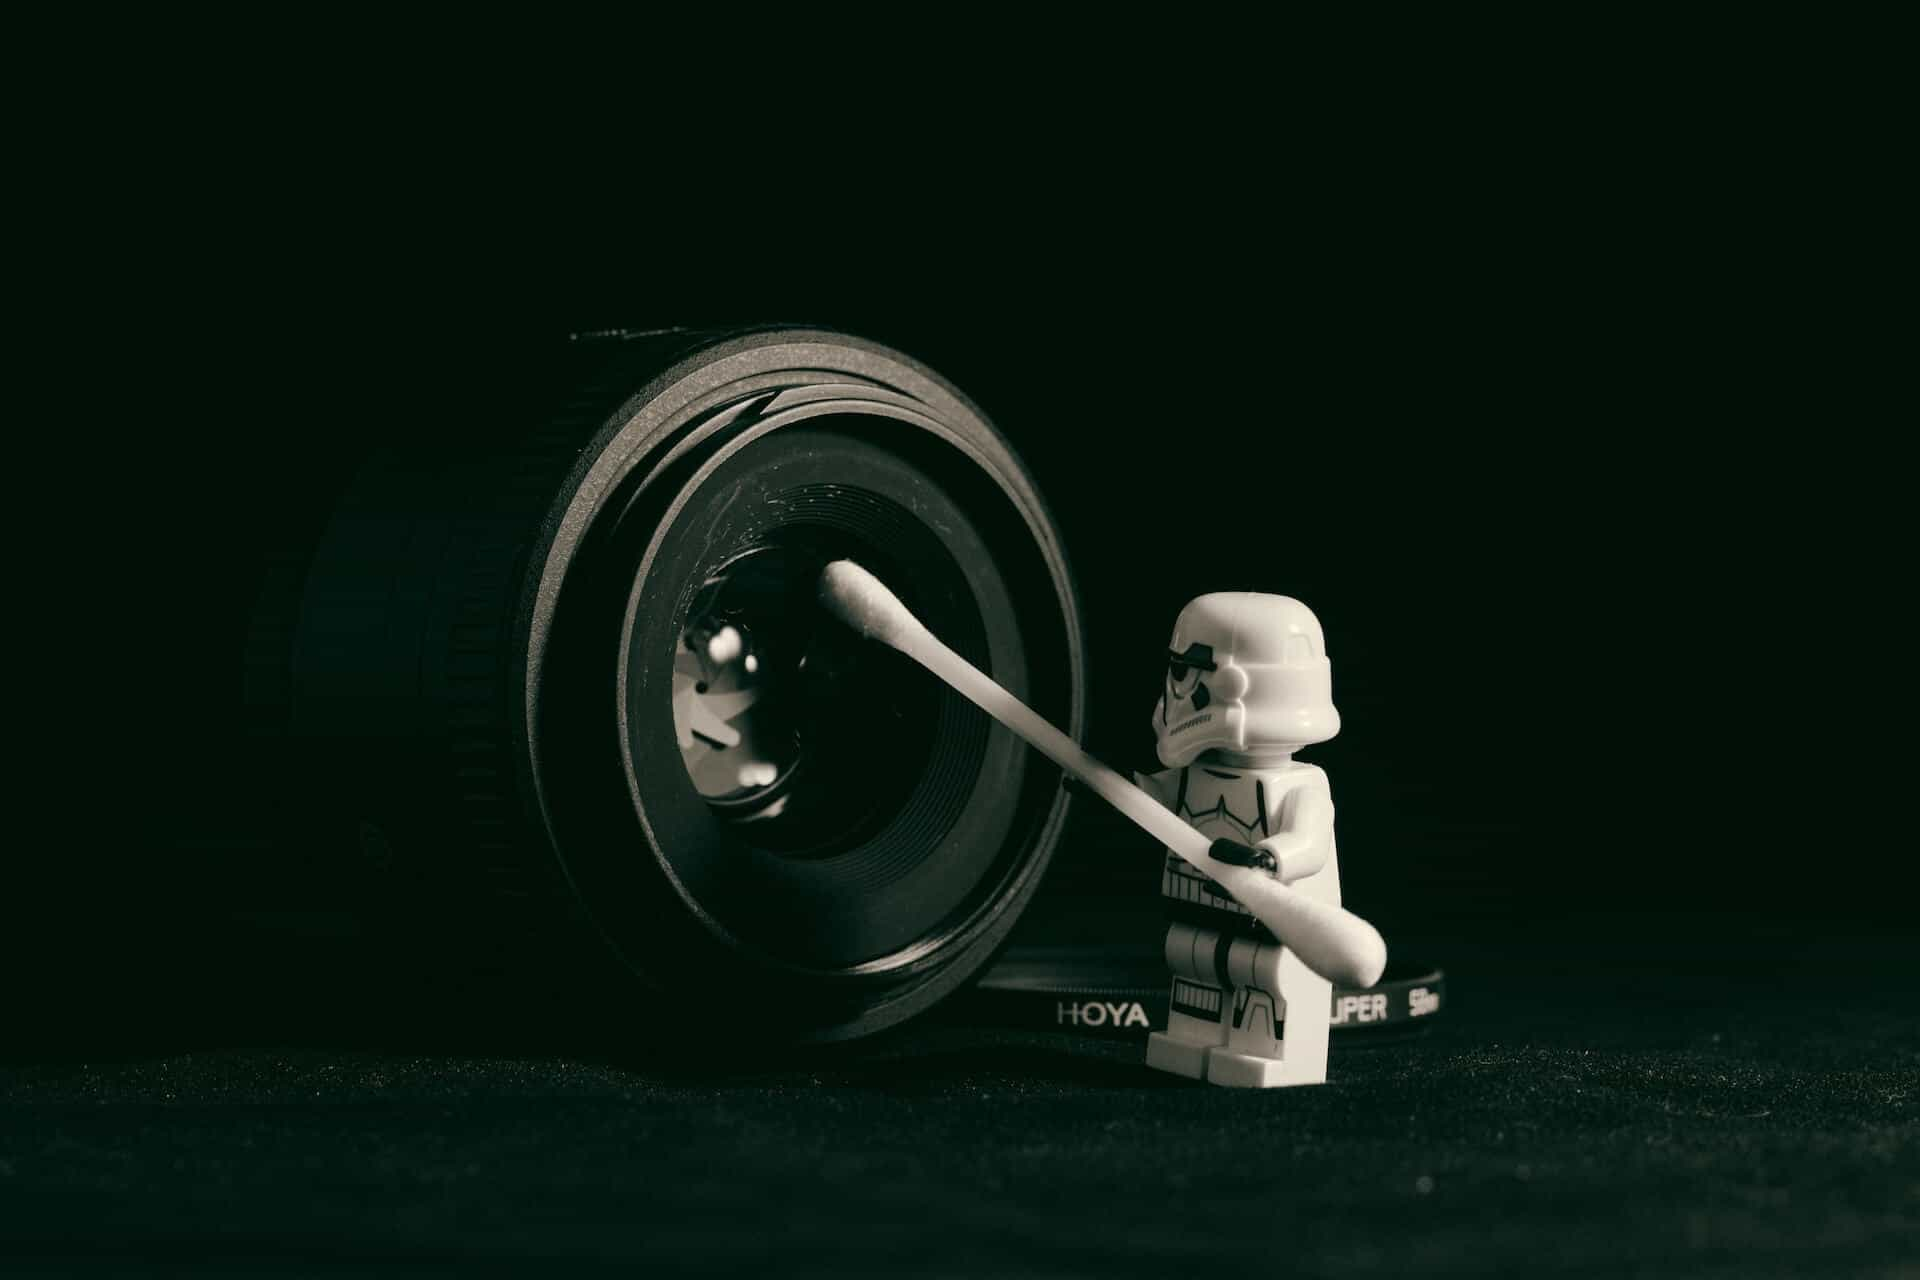 Stormtrooper cleaning a camera lens